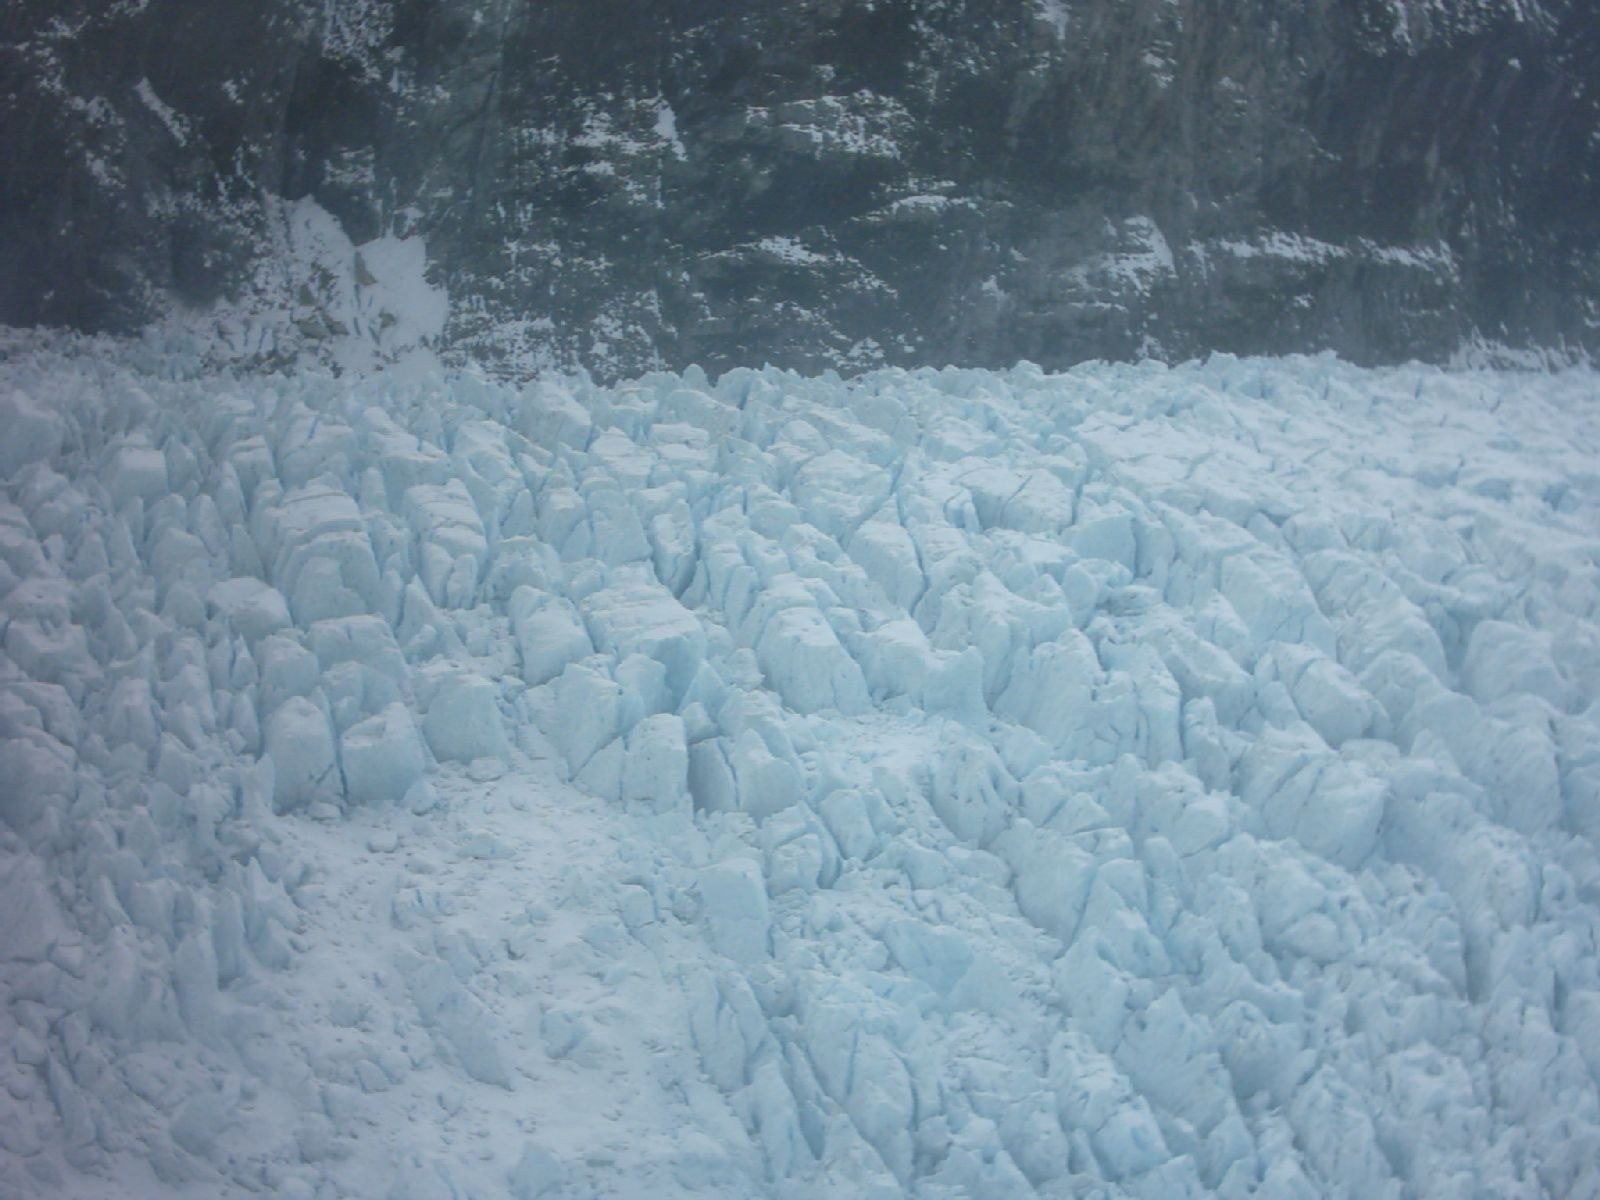 File:Franz Josef Glacier Ice Seracs.jpg - Wikipedia, the free ...